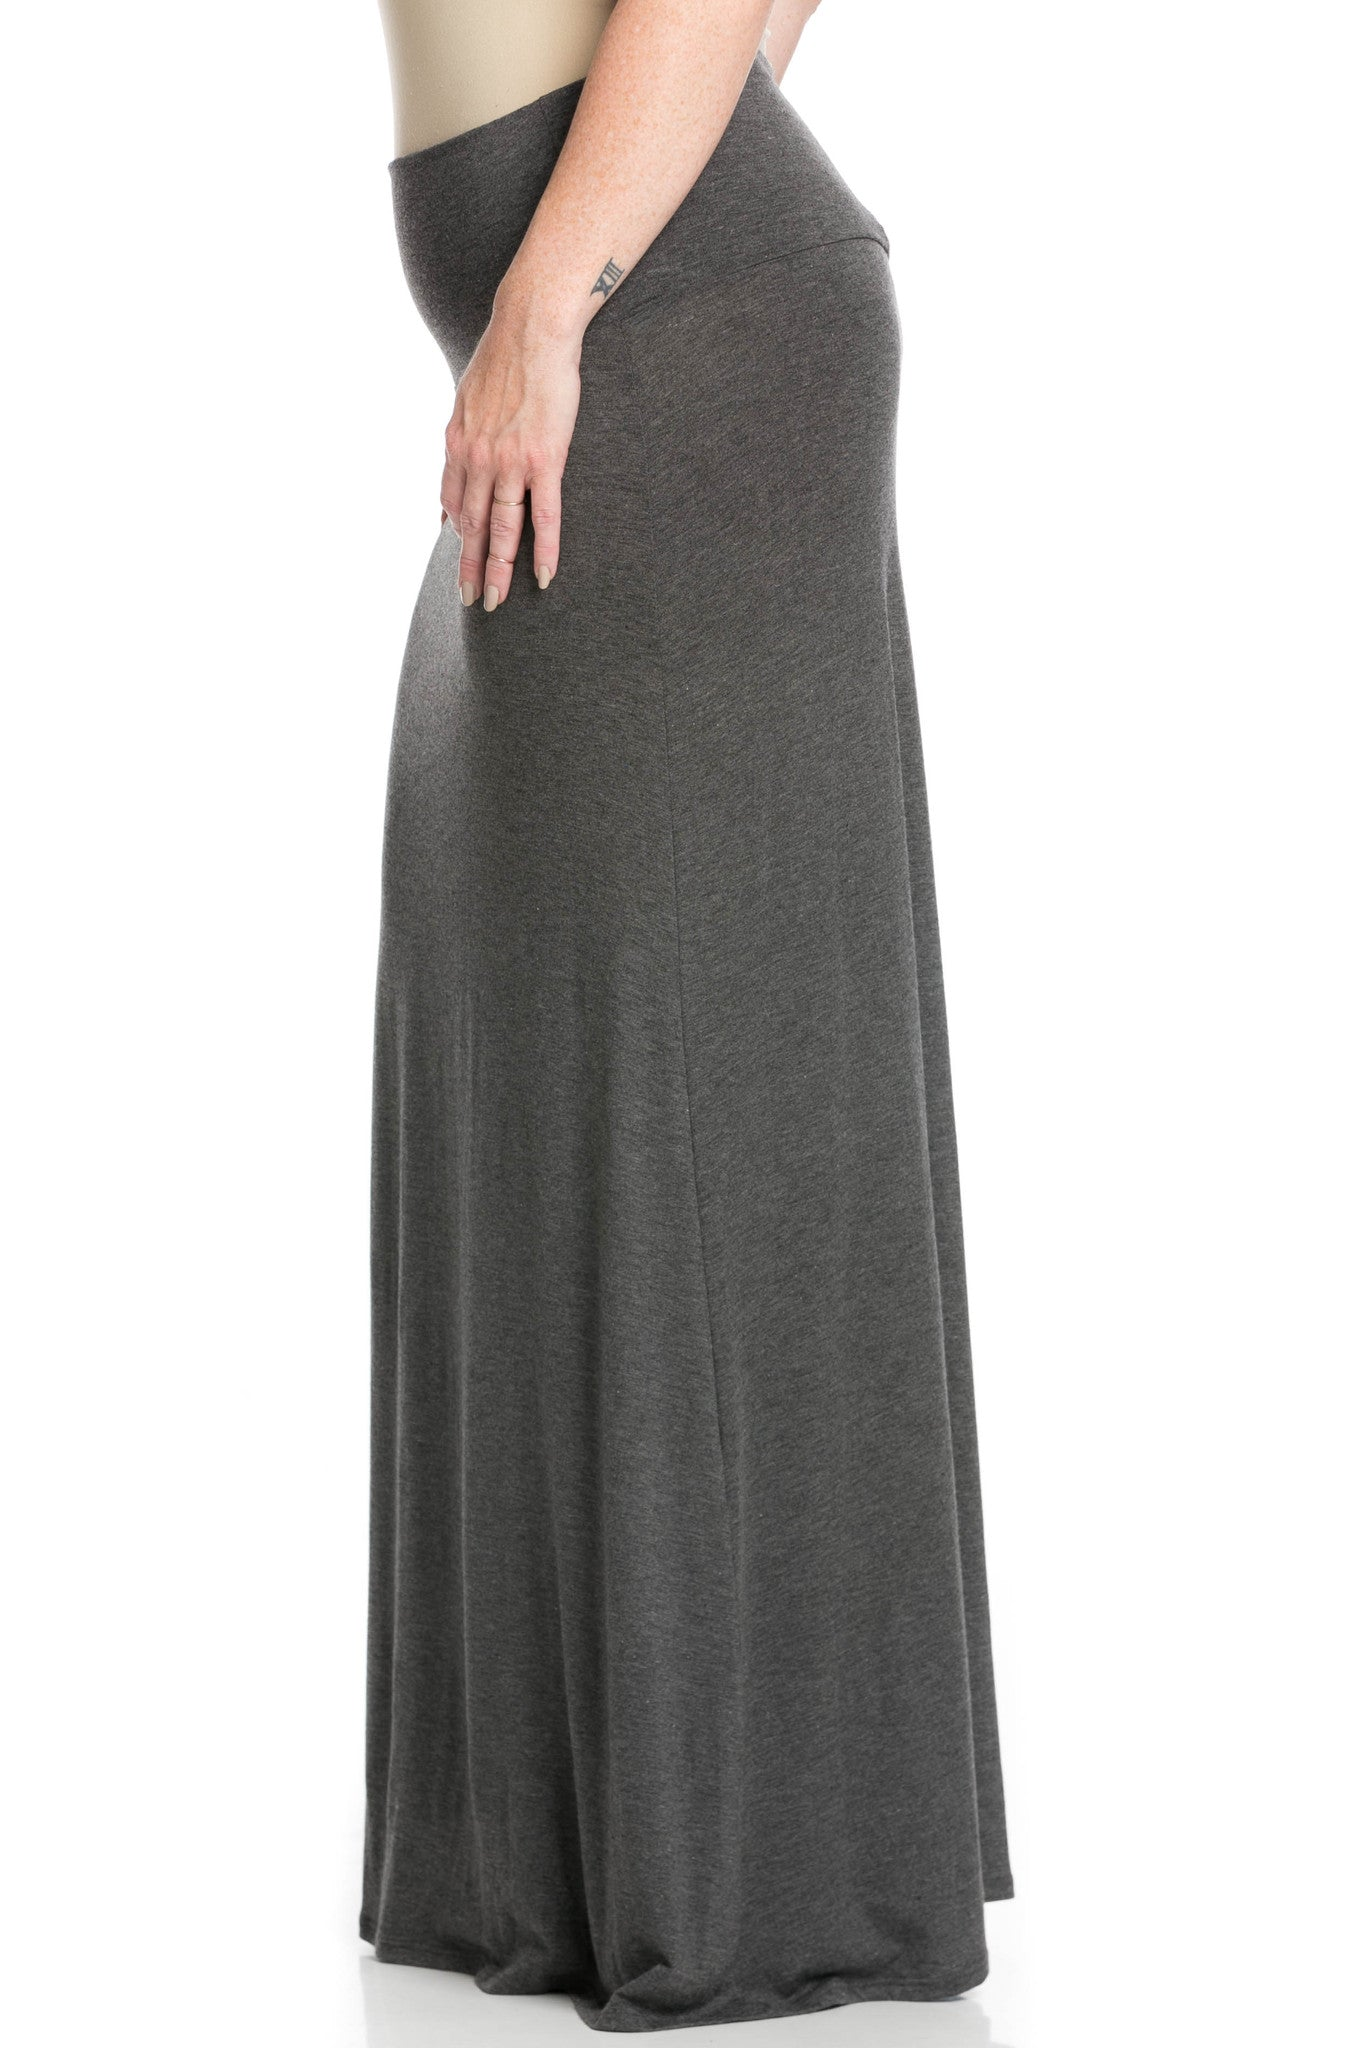 Fold Over Two-Way Maxi Skirt Charcoal - Skirts - My Yuccie - 10